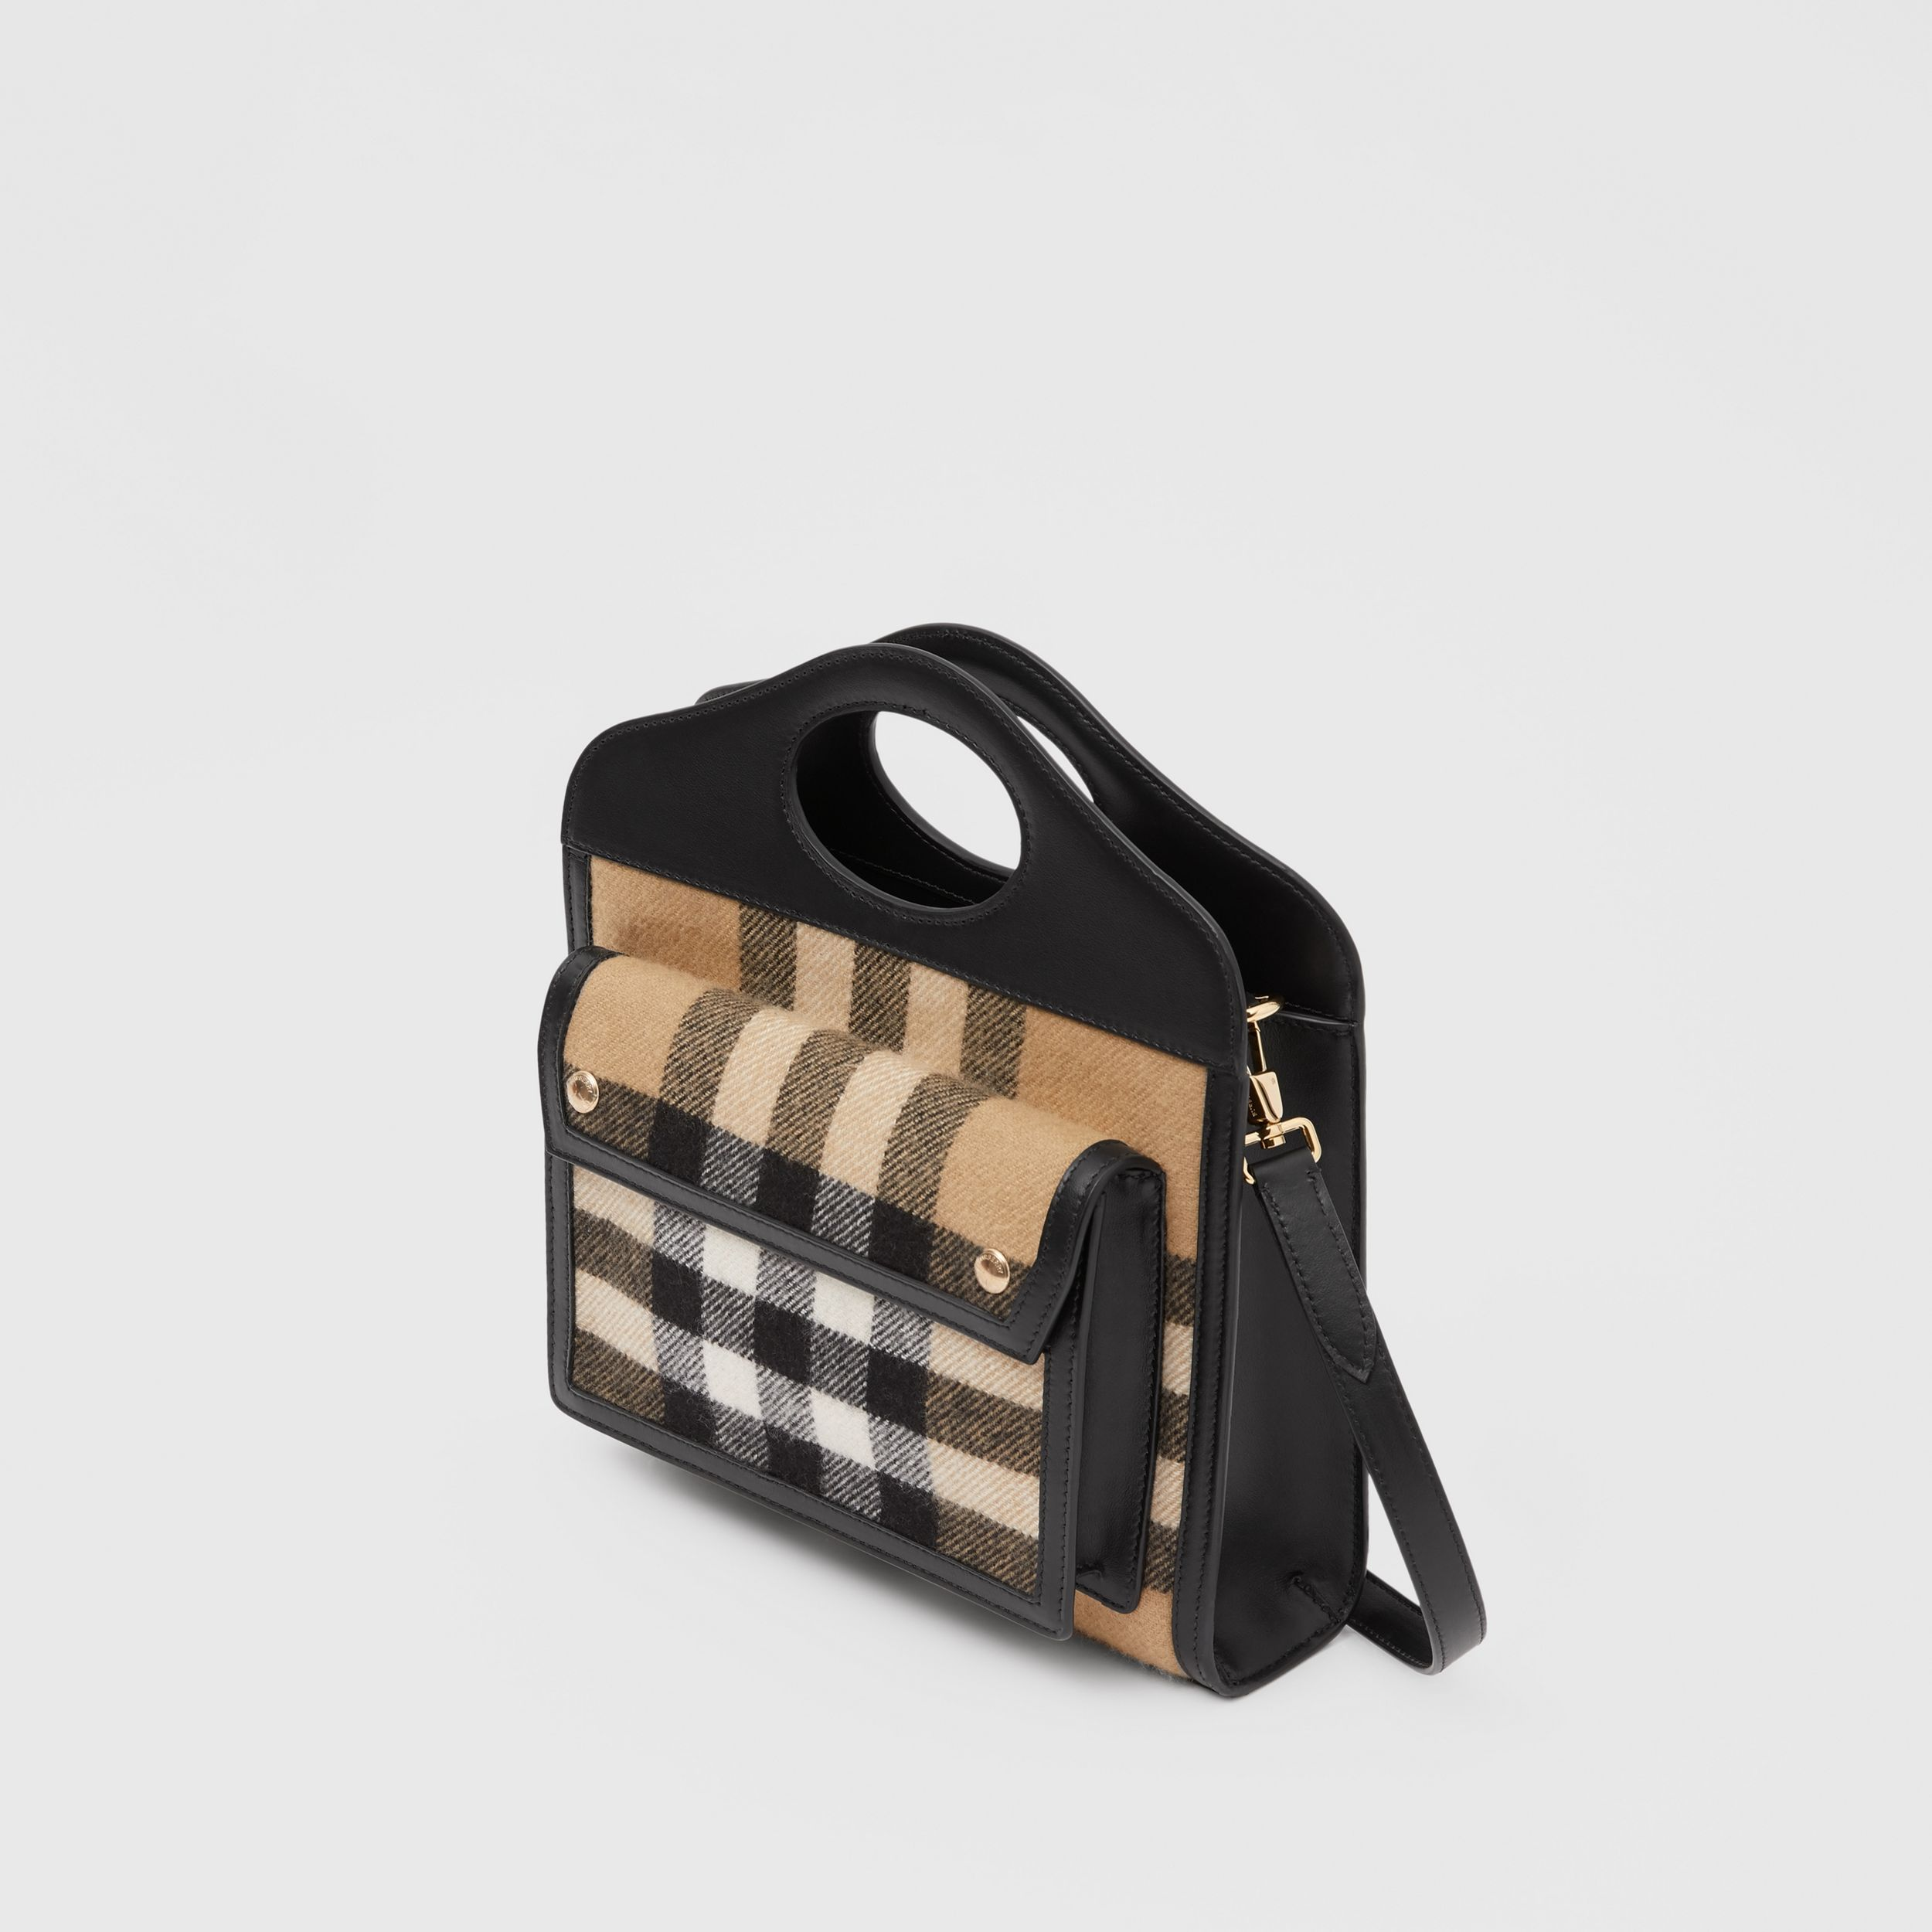 Mini Check Cashmere and Leather Pocket Bag in Archive Beige - Women | Burberry - 4